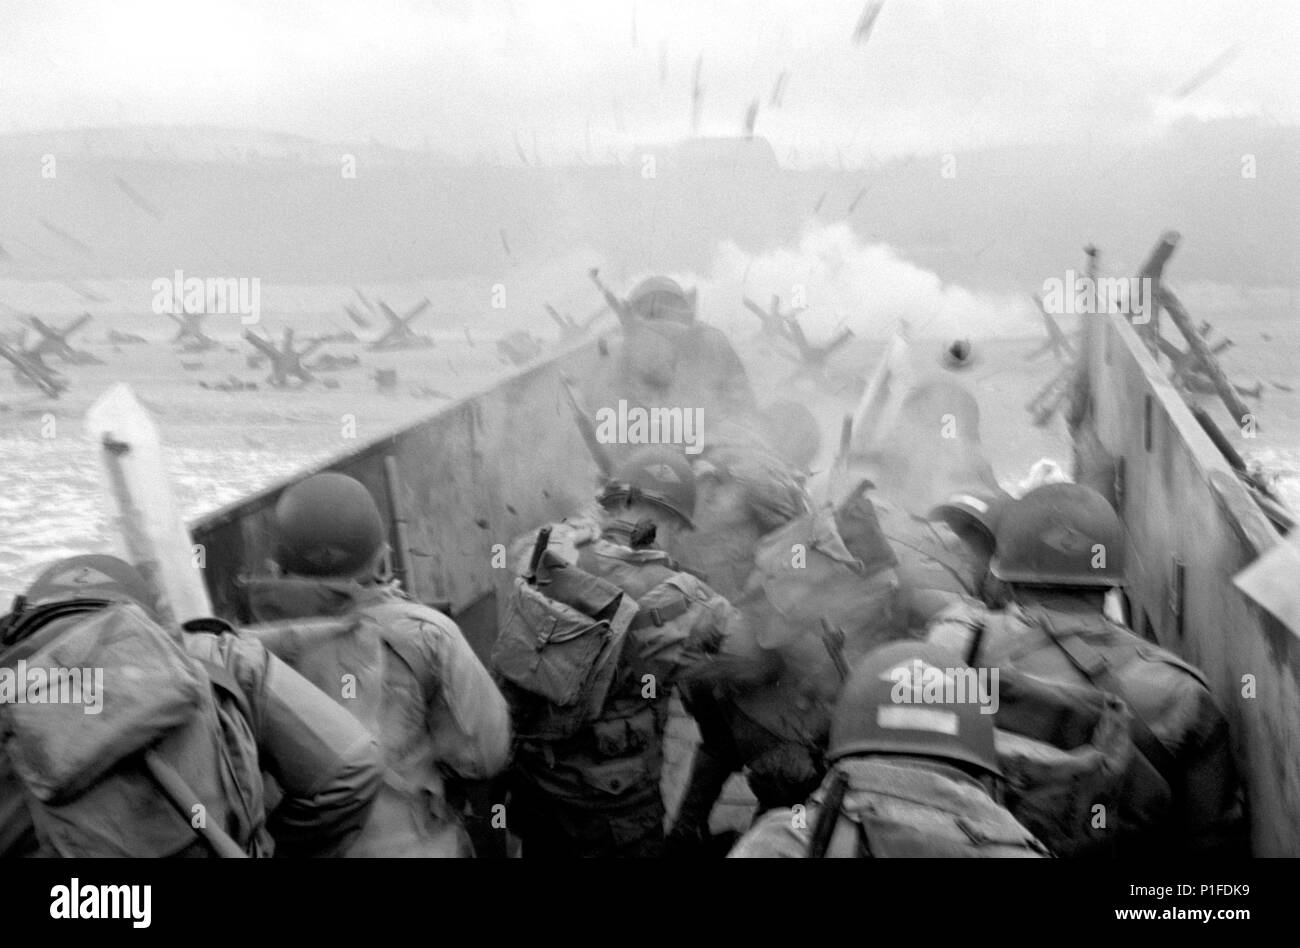 saving private ryan black and white stock photos amp images